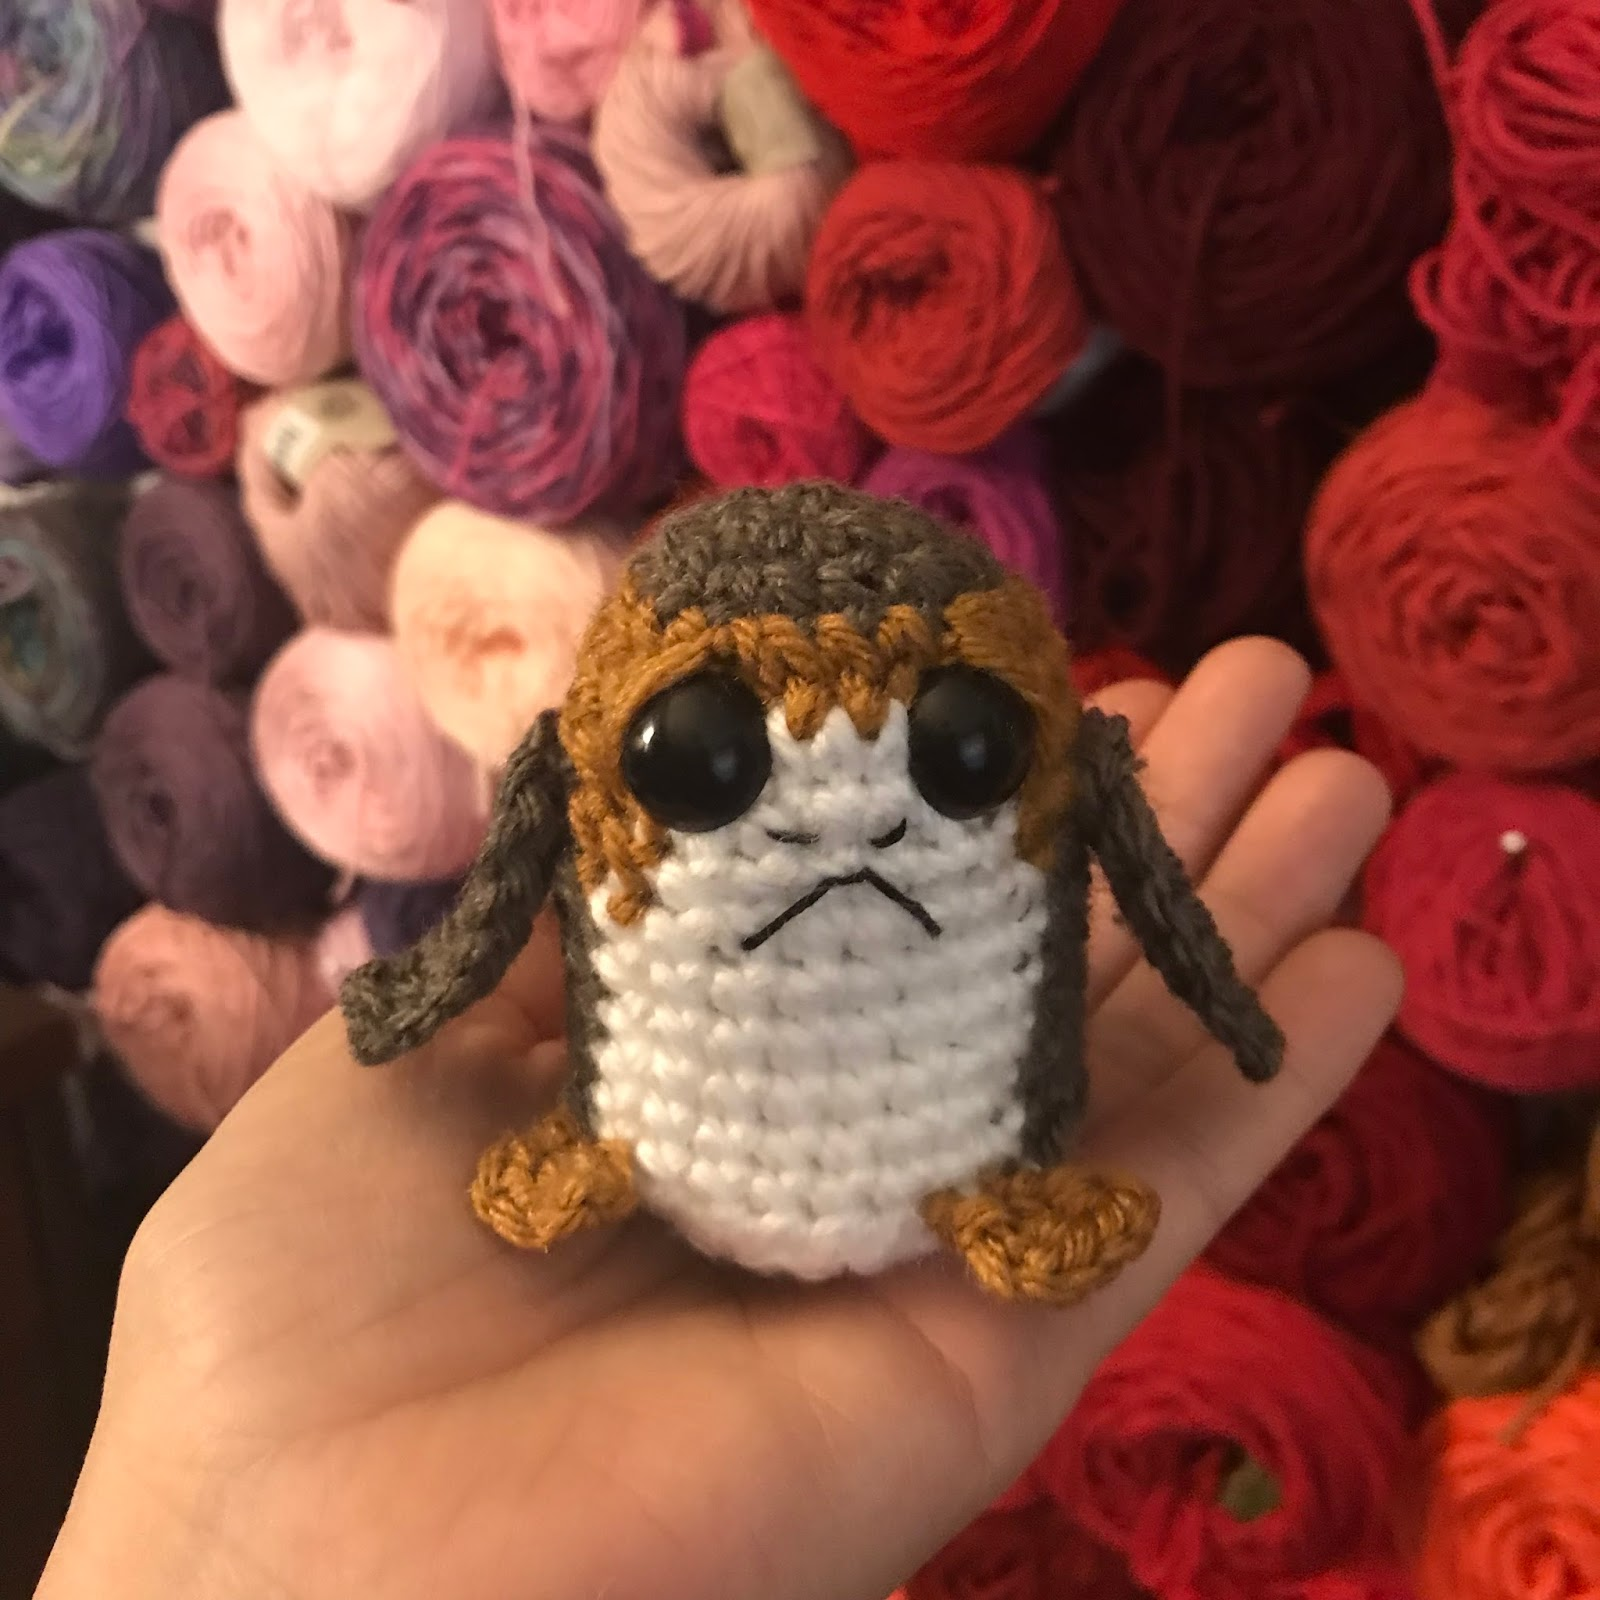 CRAFTYisCOOL: Amigurumi Star Wars Porg! Free Pattern